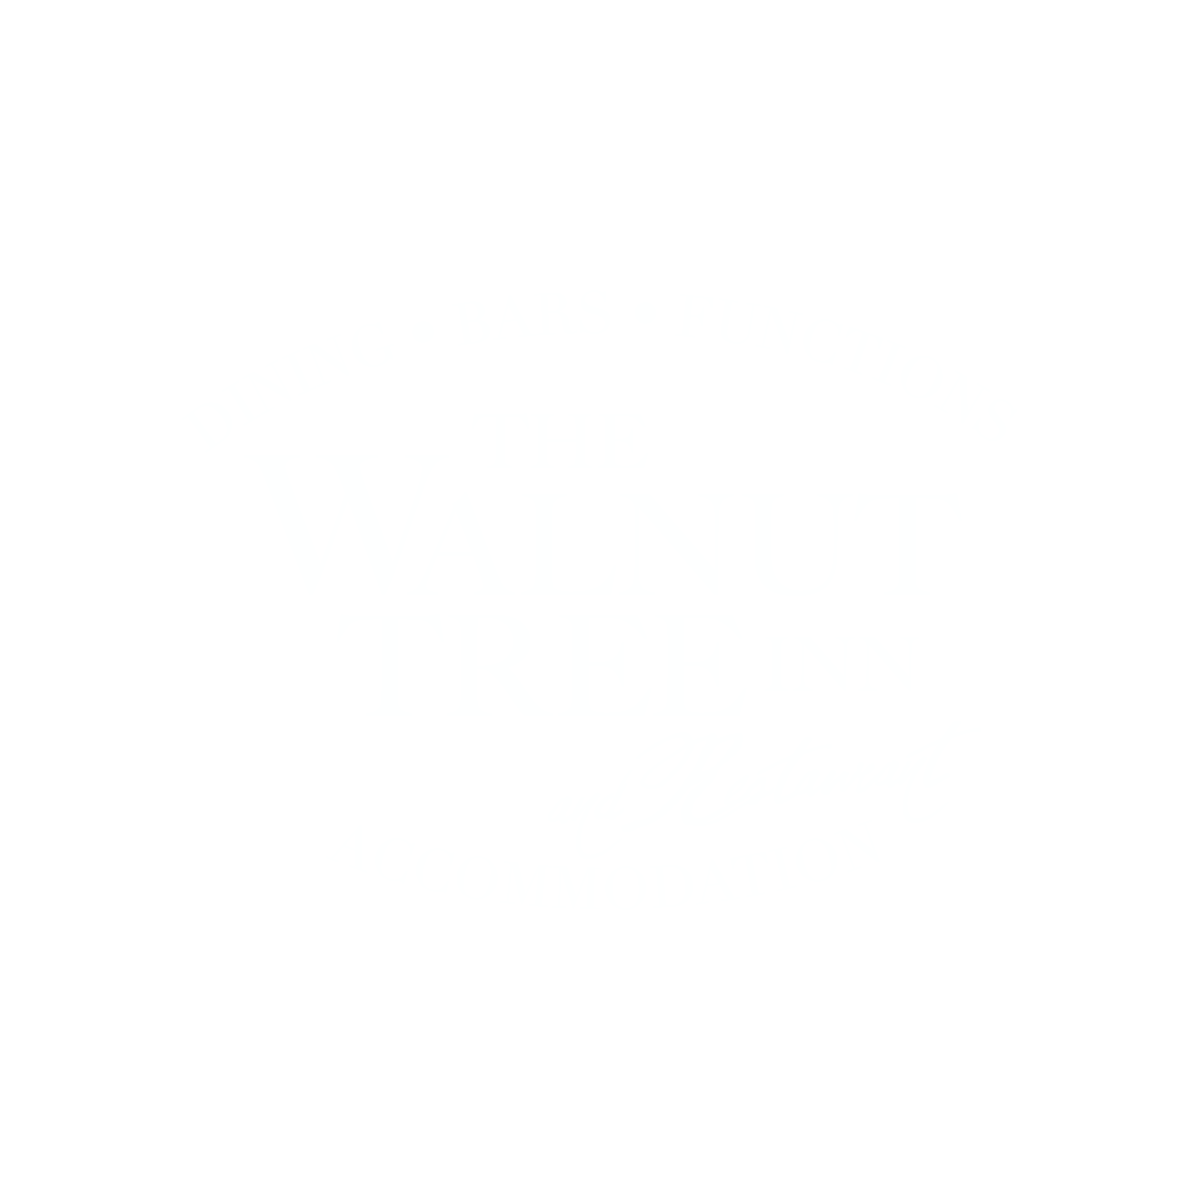 The Walnut Tree Inn